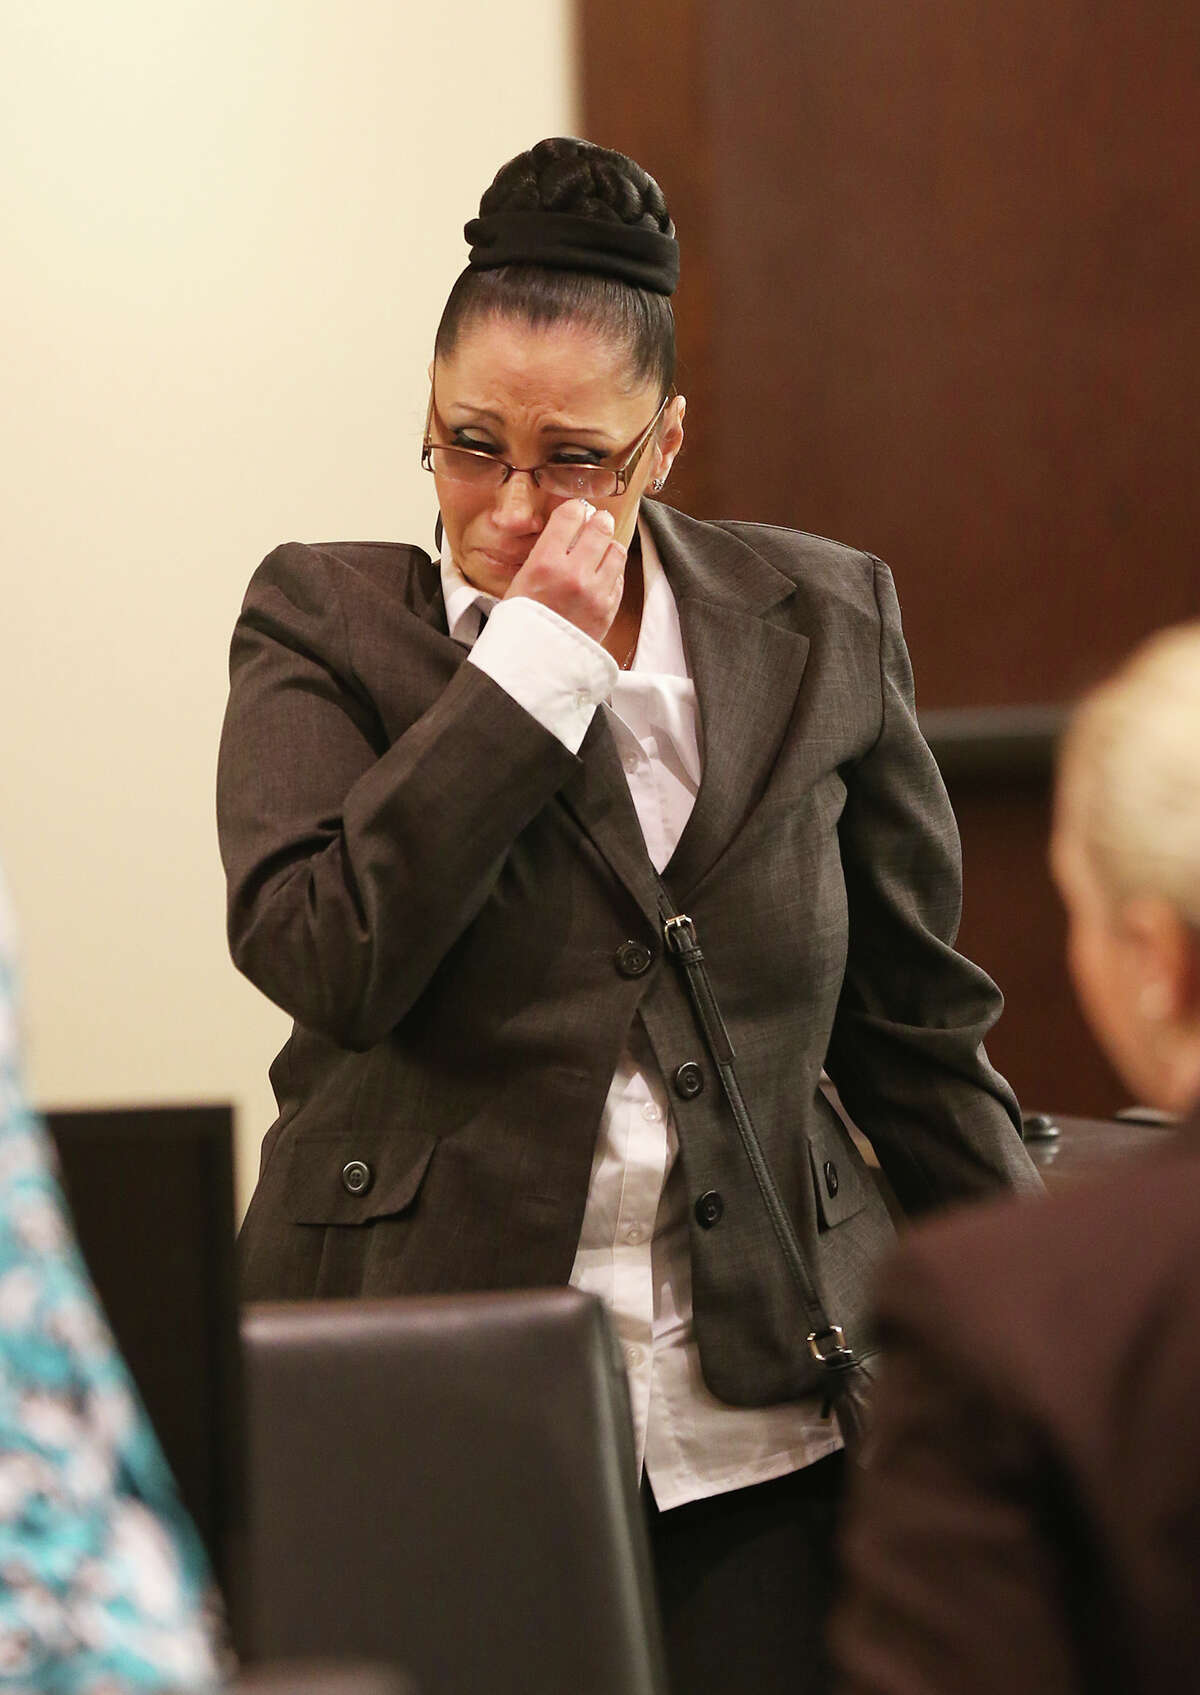 The victim's daughter, Margie Cantu, of Houston, wipes her tears after testifying at the sentencing of Benito Cavazos Valverde, 64, Thursday, March 20, 2014. Bexar County 290th District Court Judge Melisa Skinner sentenced Valverde to 30 years. In February, he was convicted of murdering David Deleon Ramirez, 61, during a bar shooting in 2011.